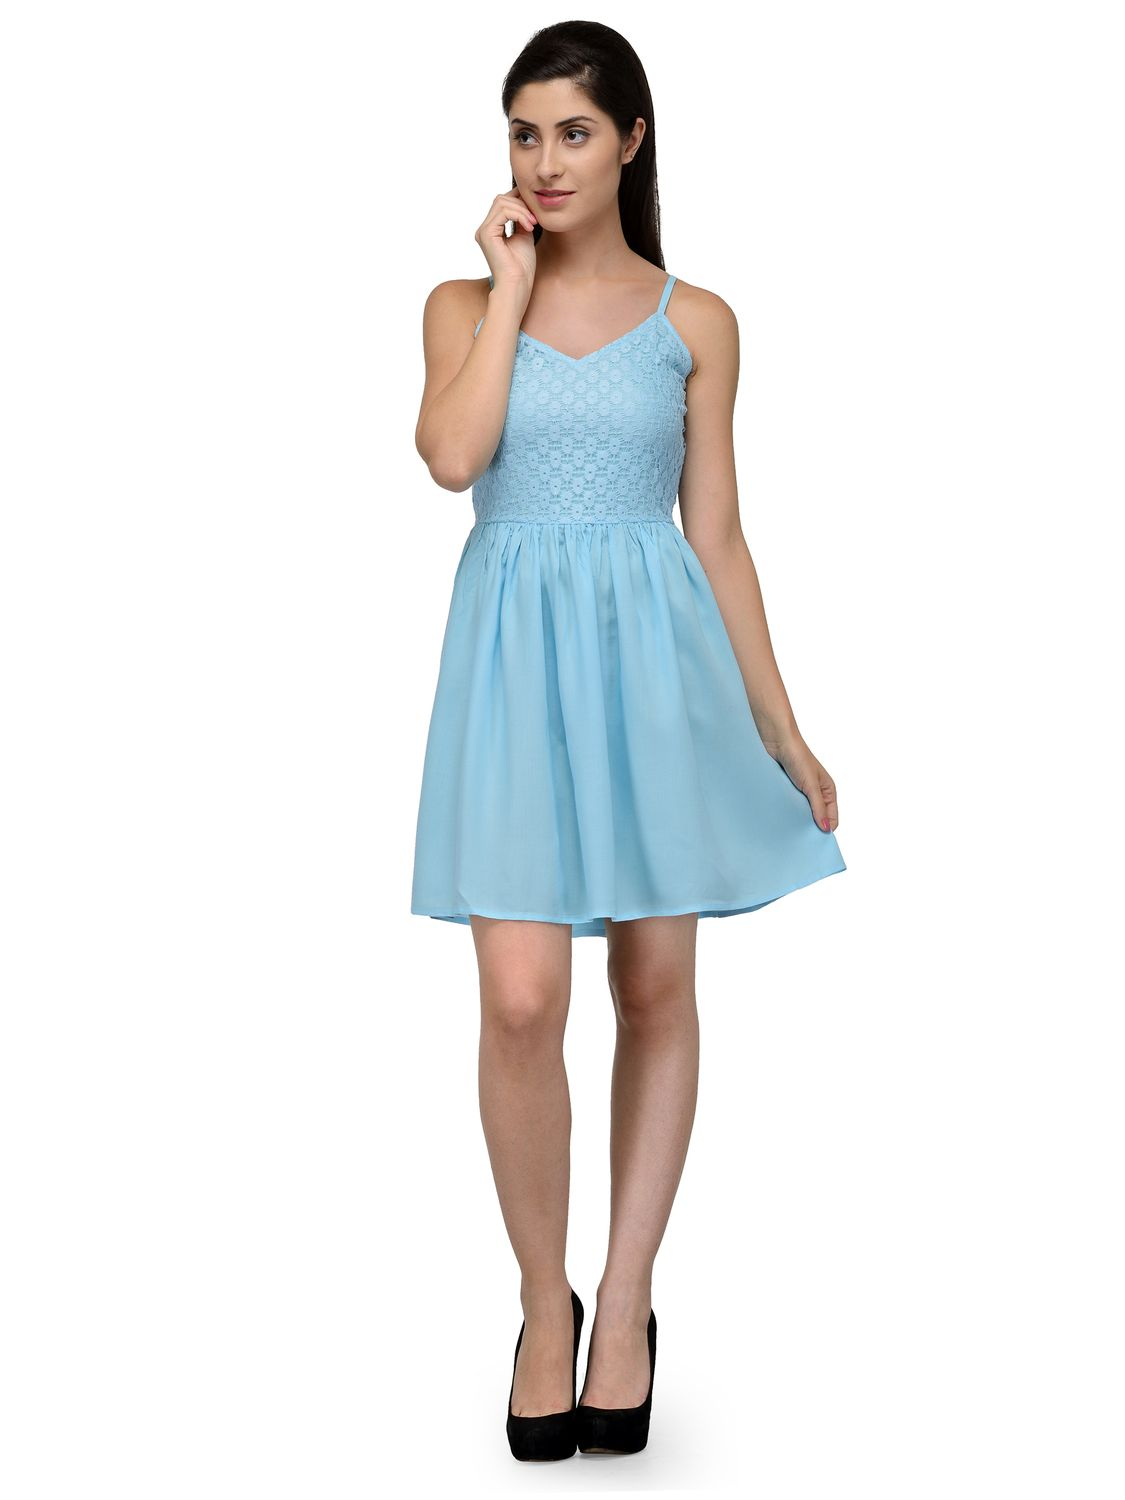 Buy Knee Length Dresses Online in India at Best Prices - Kraftly